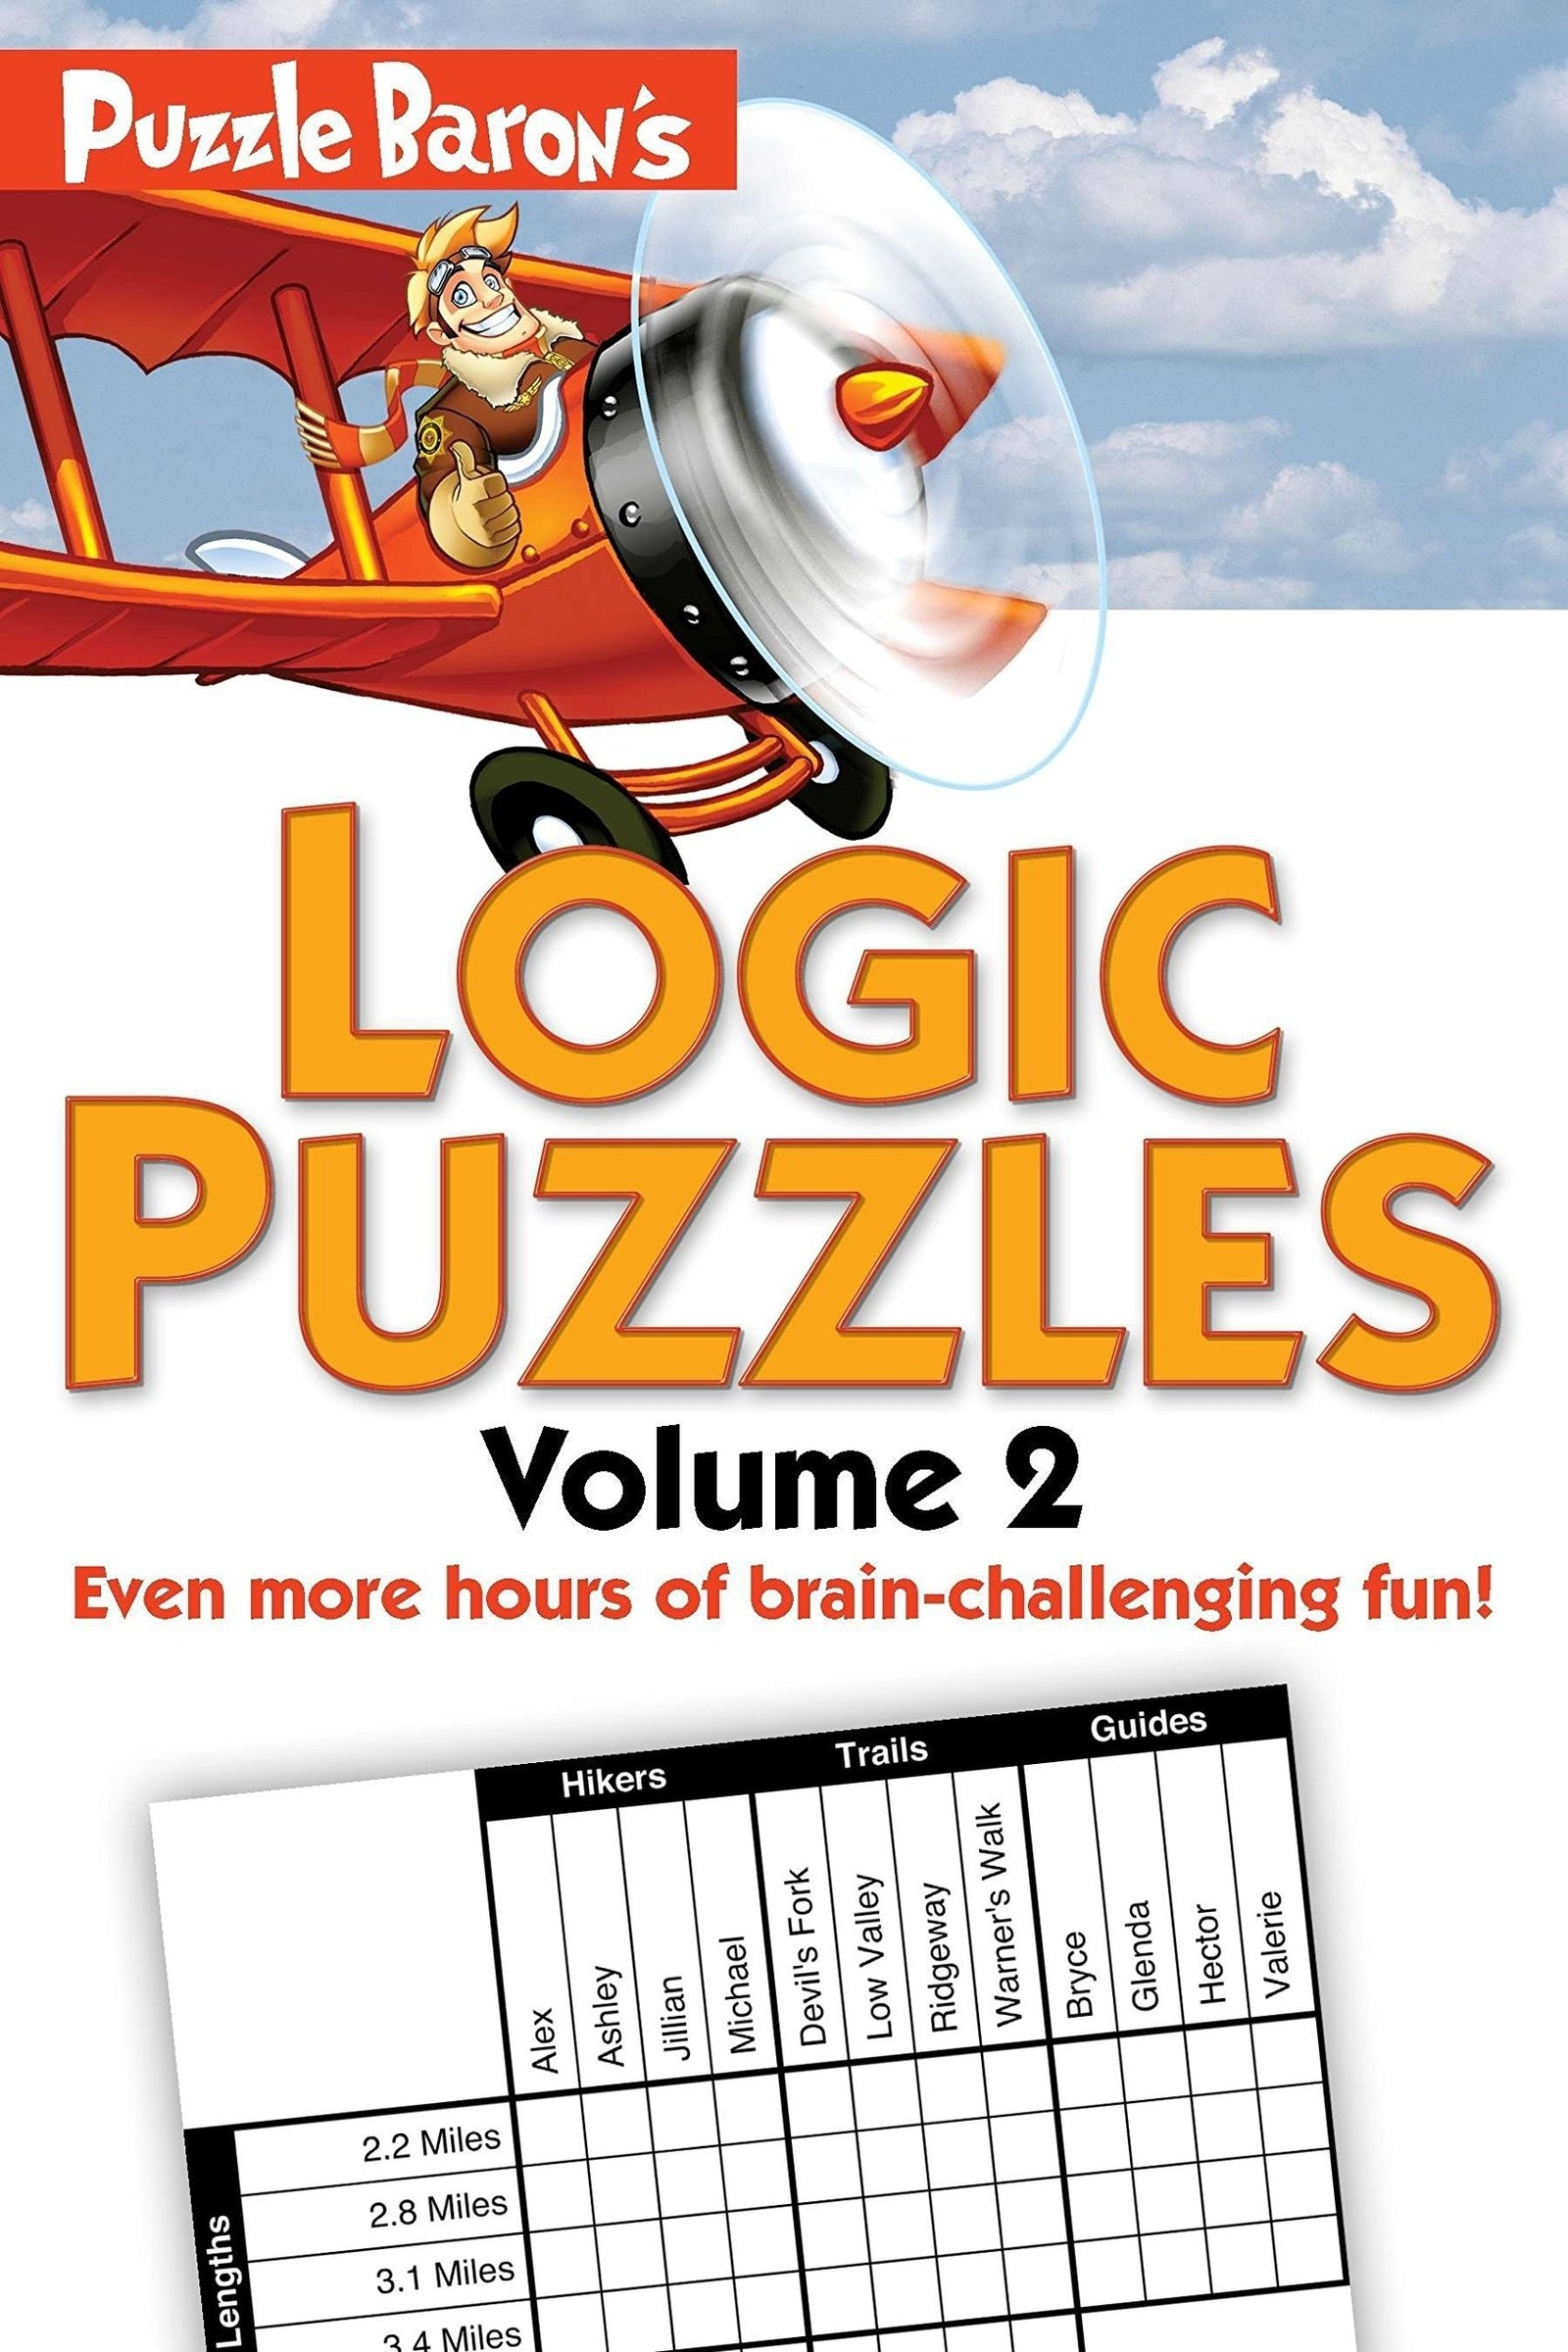 cover of Puzzle Baron's Logic Puzzles, Vol. 2